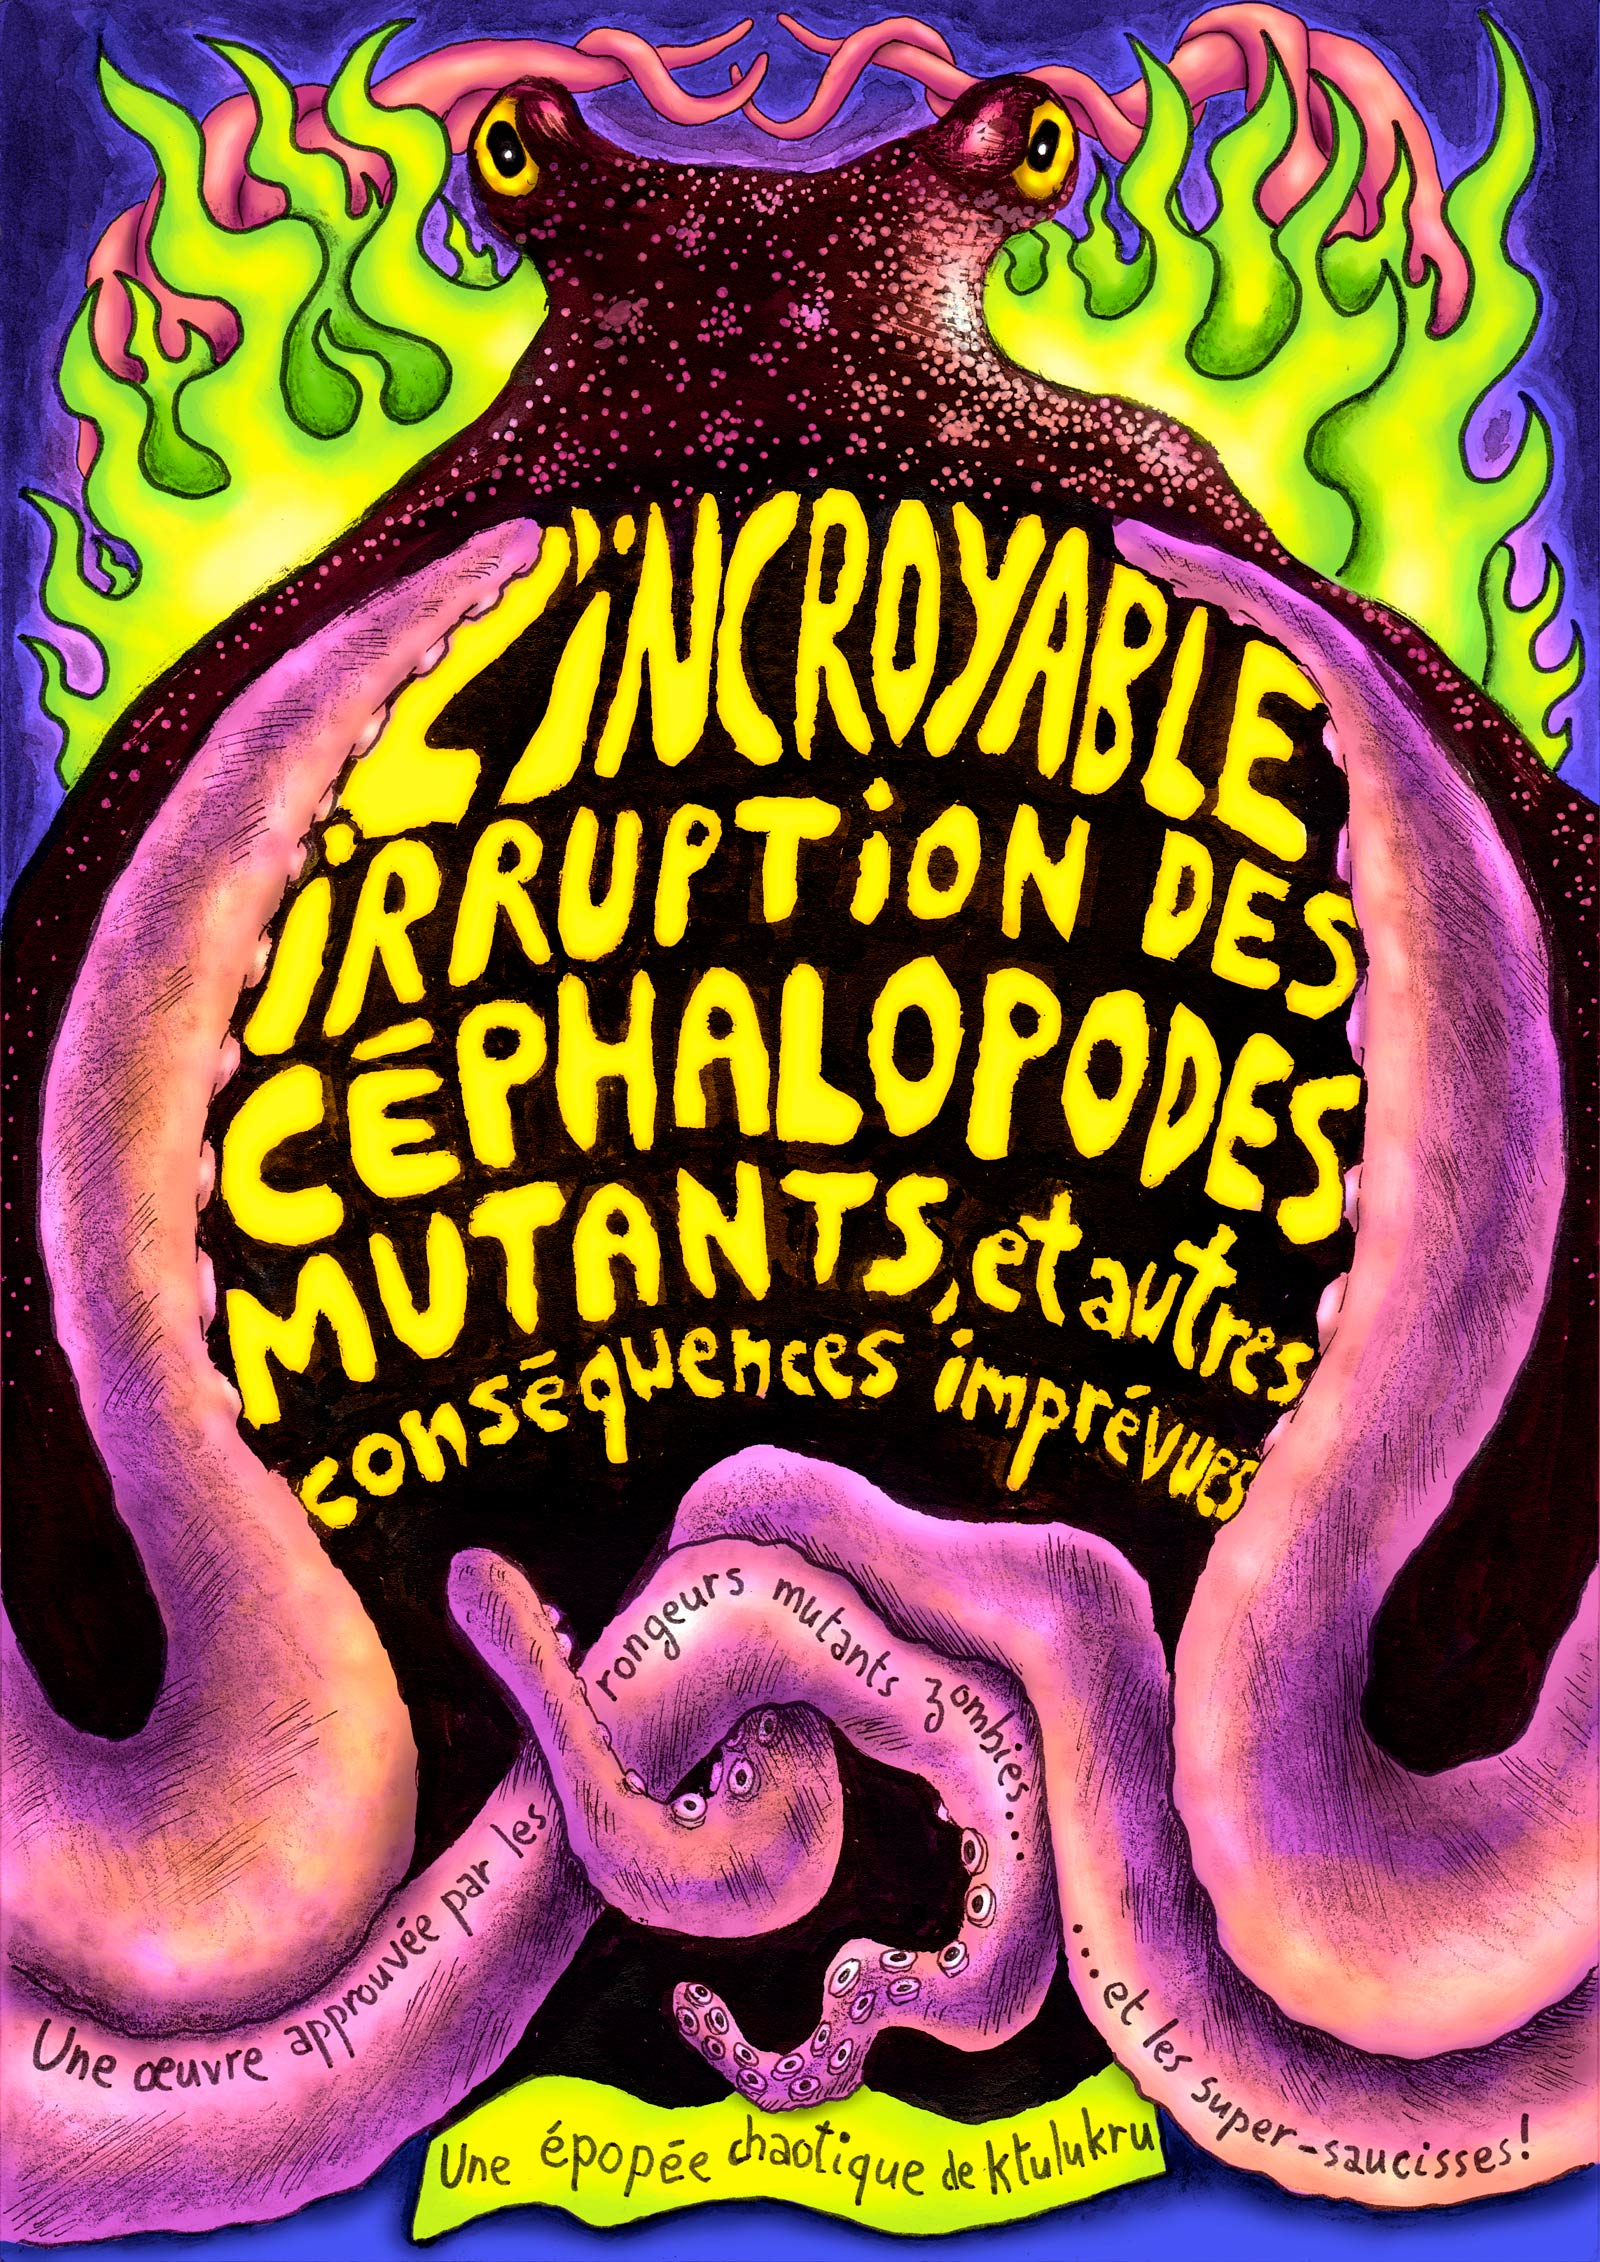 L'incroyable irruption des céphalopodes mutants